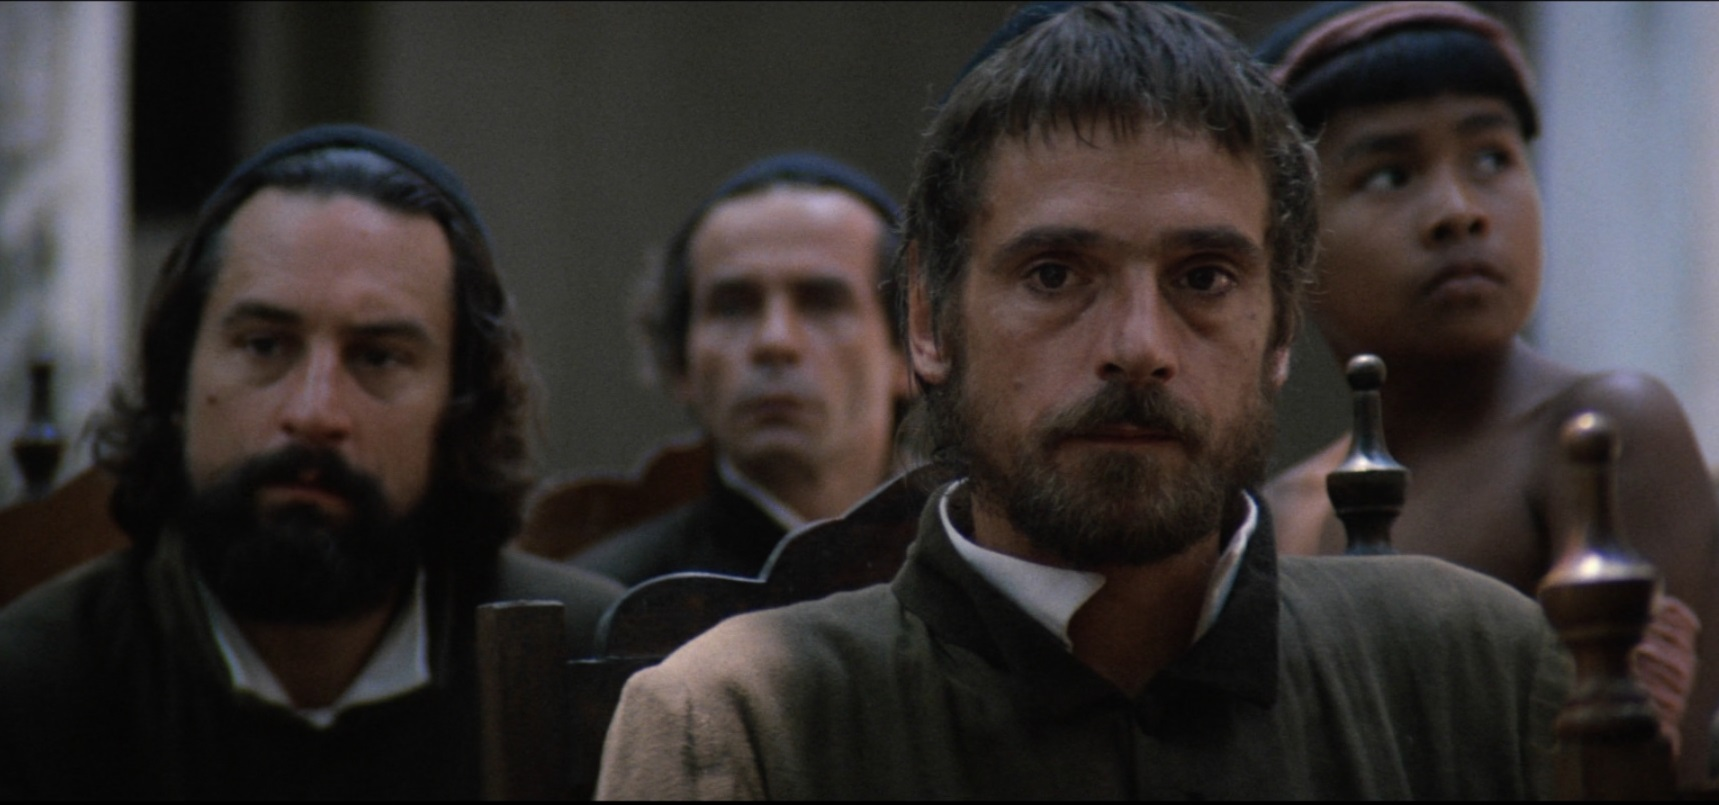 Jeremy Irons and Robert de Niro in The Mission